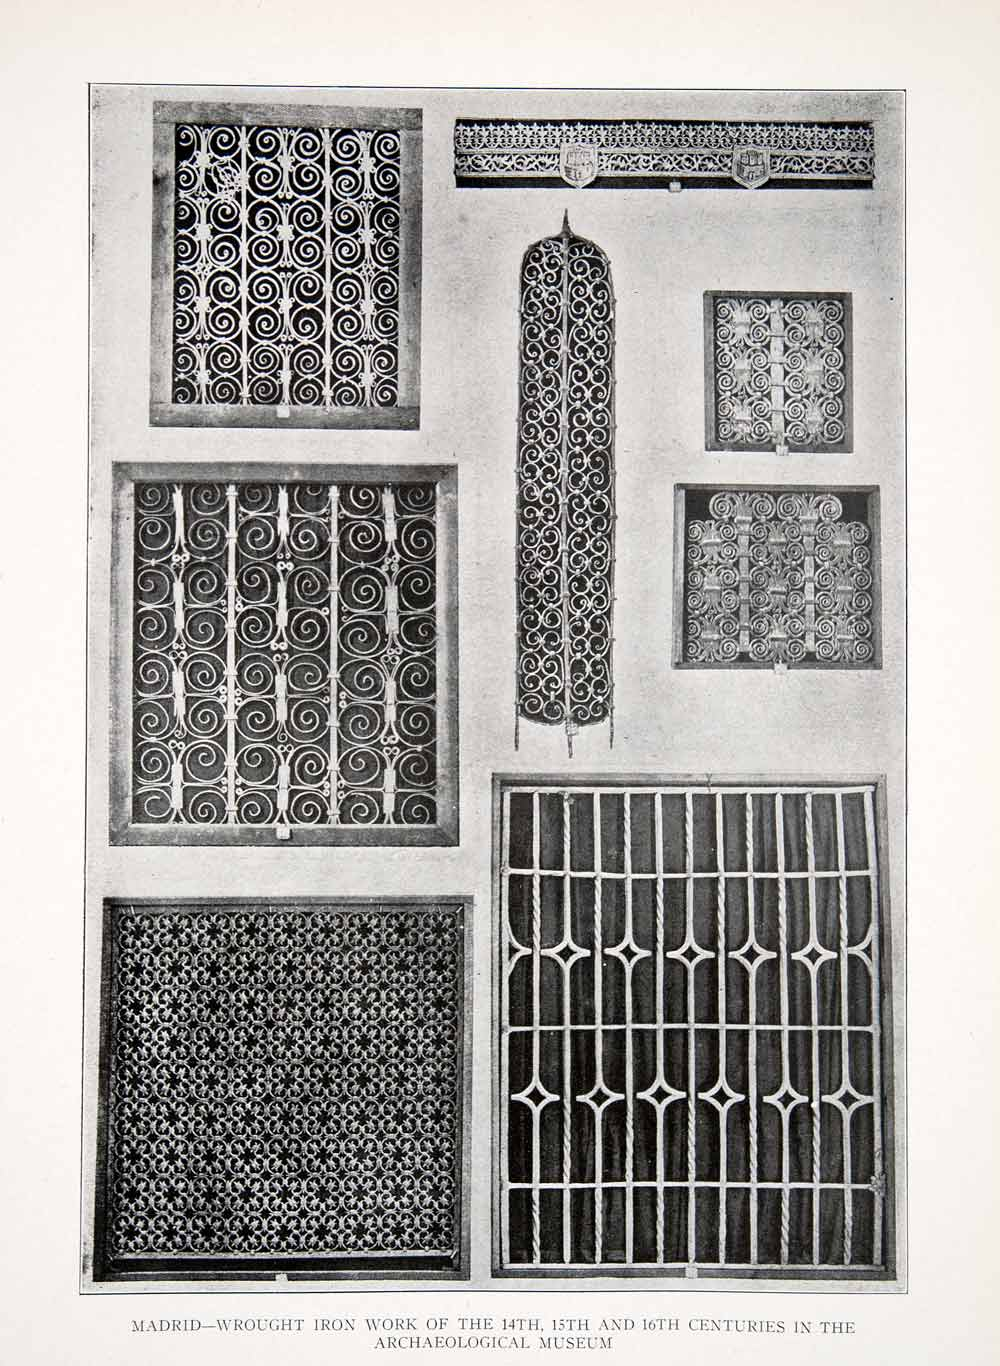 1925 Print Archaeological Museum Wrought Iron Gate Work Madrid Spain XDC5